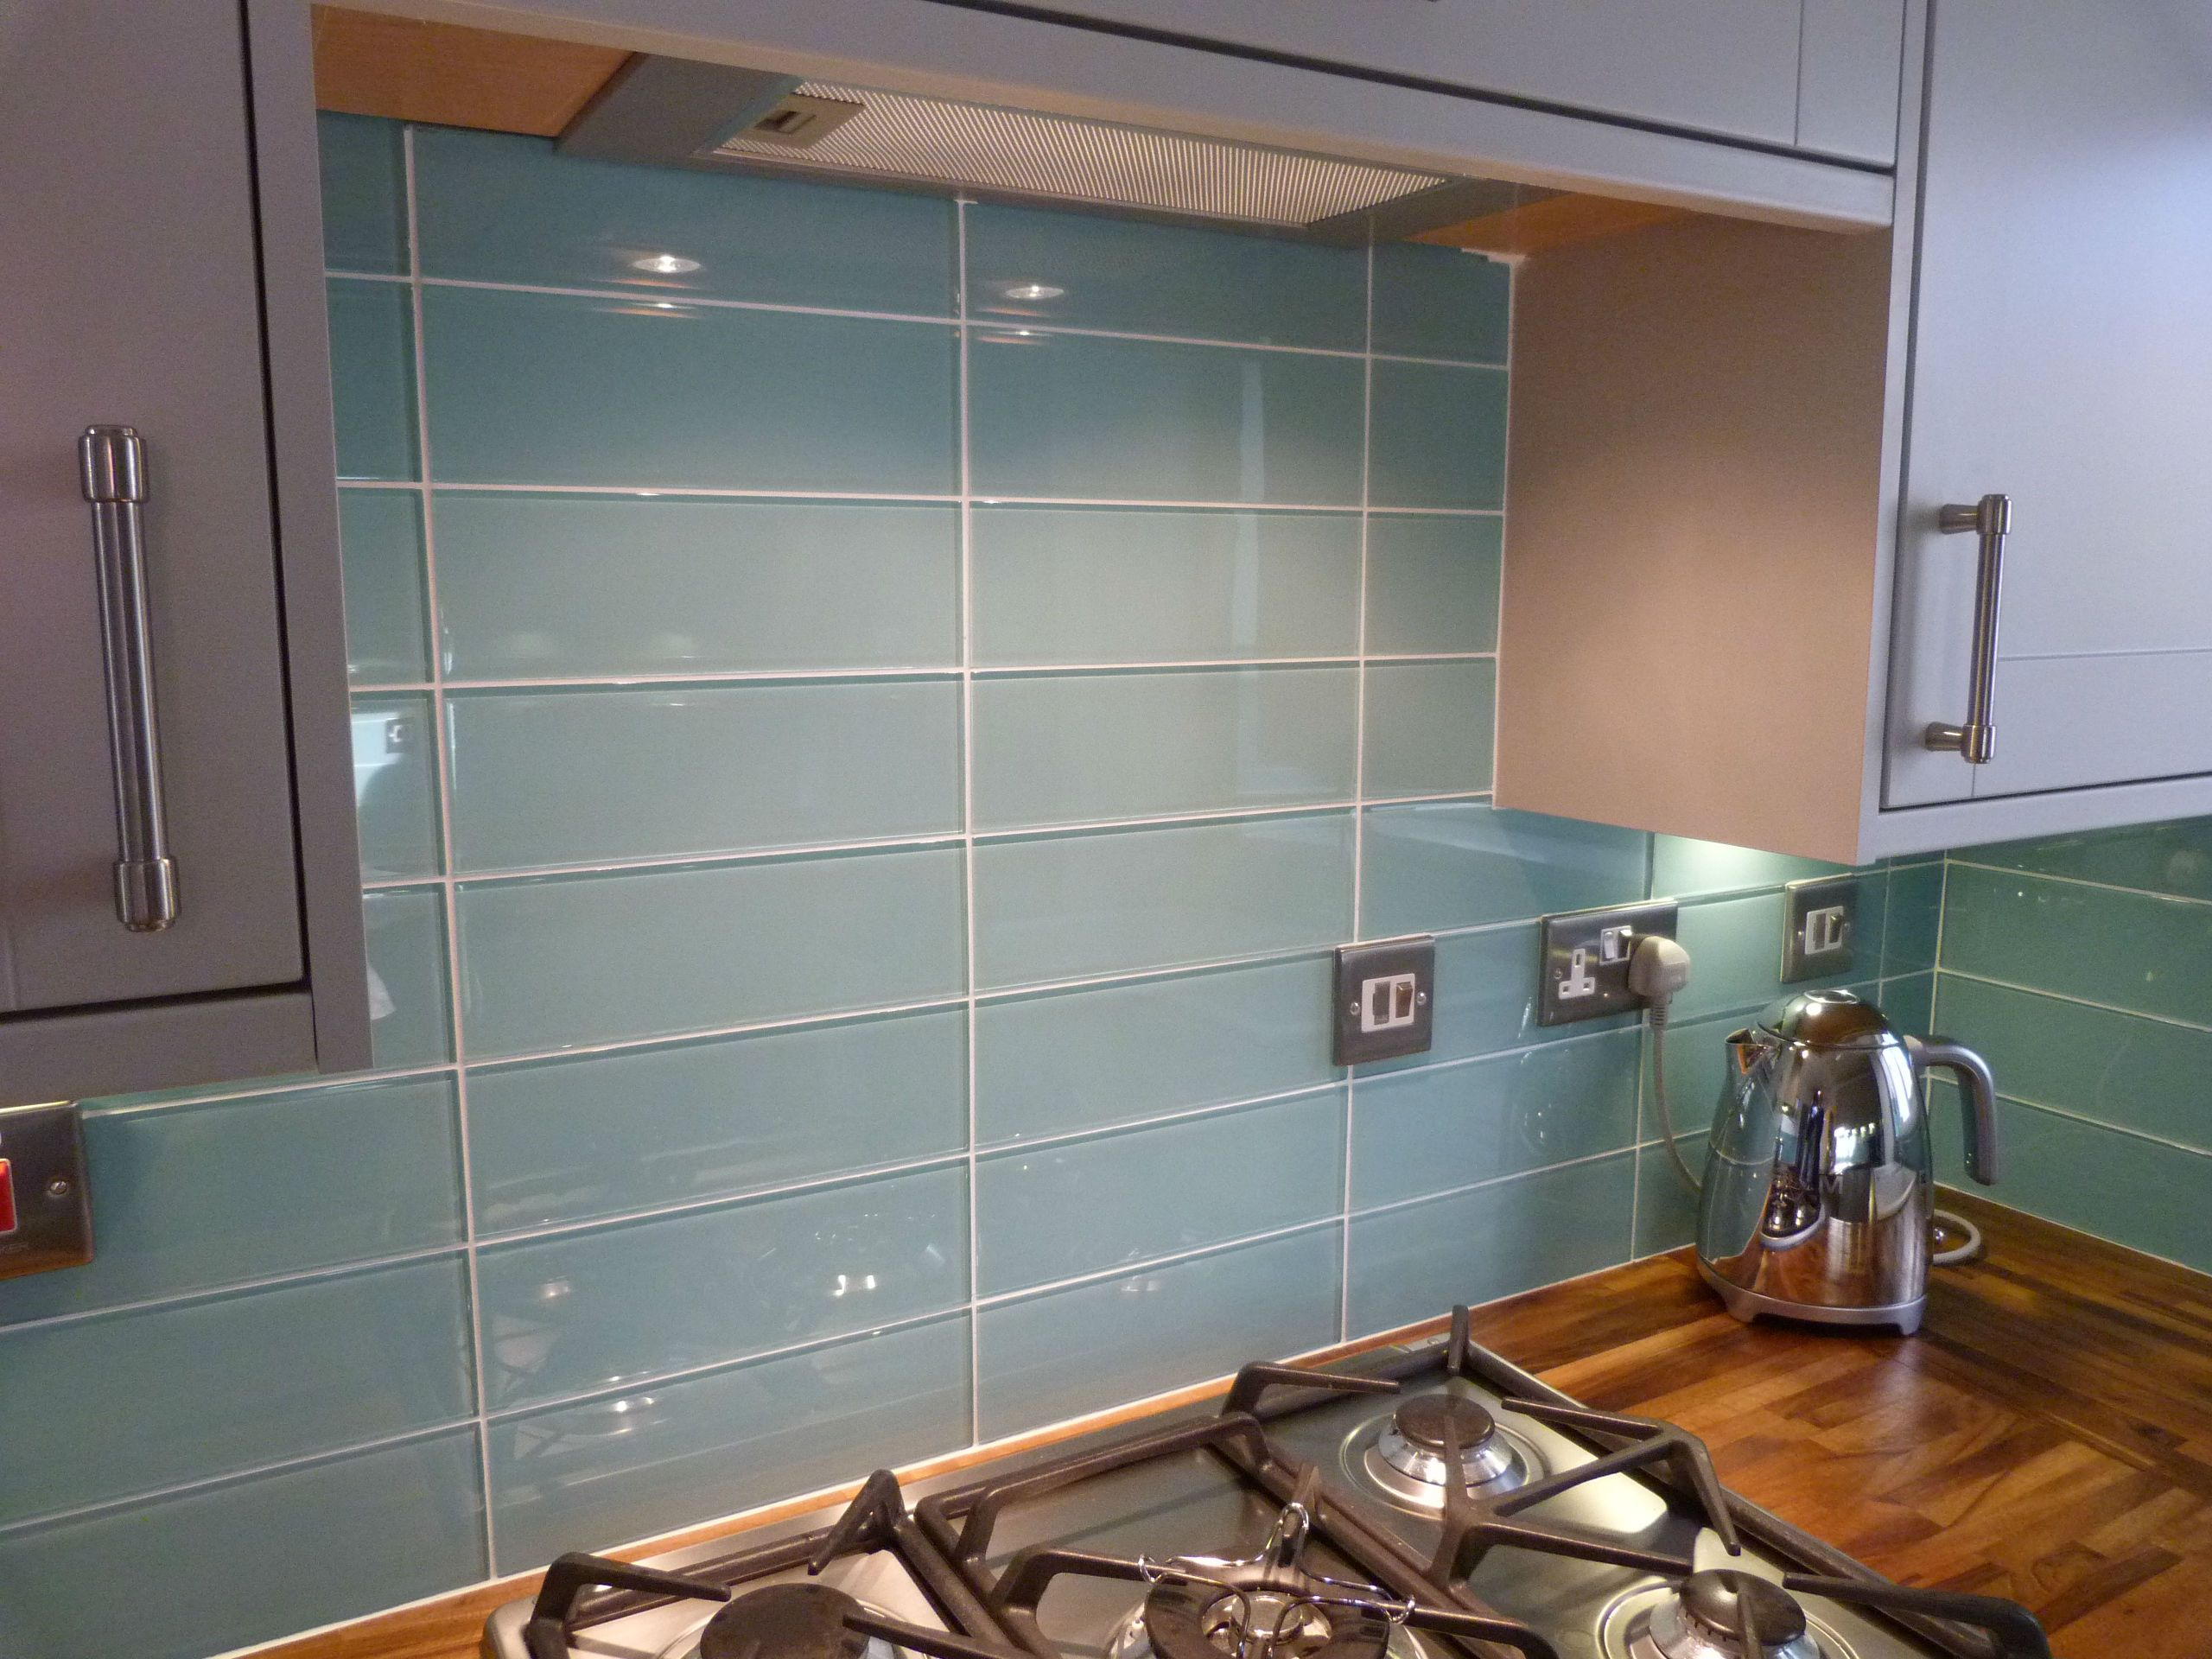 - Aqua Glass Backsplash Tile Large Turquoise Tiles Kitchen - (With